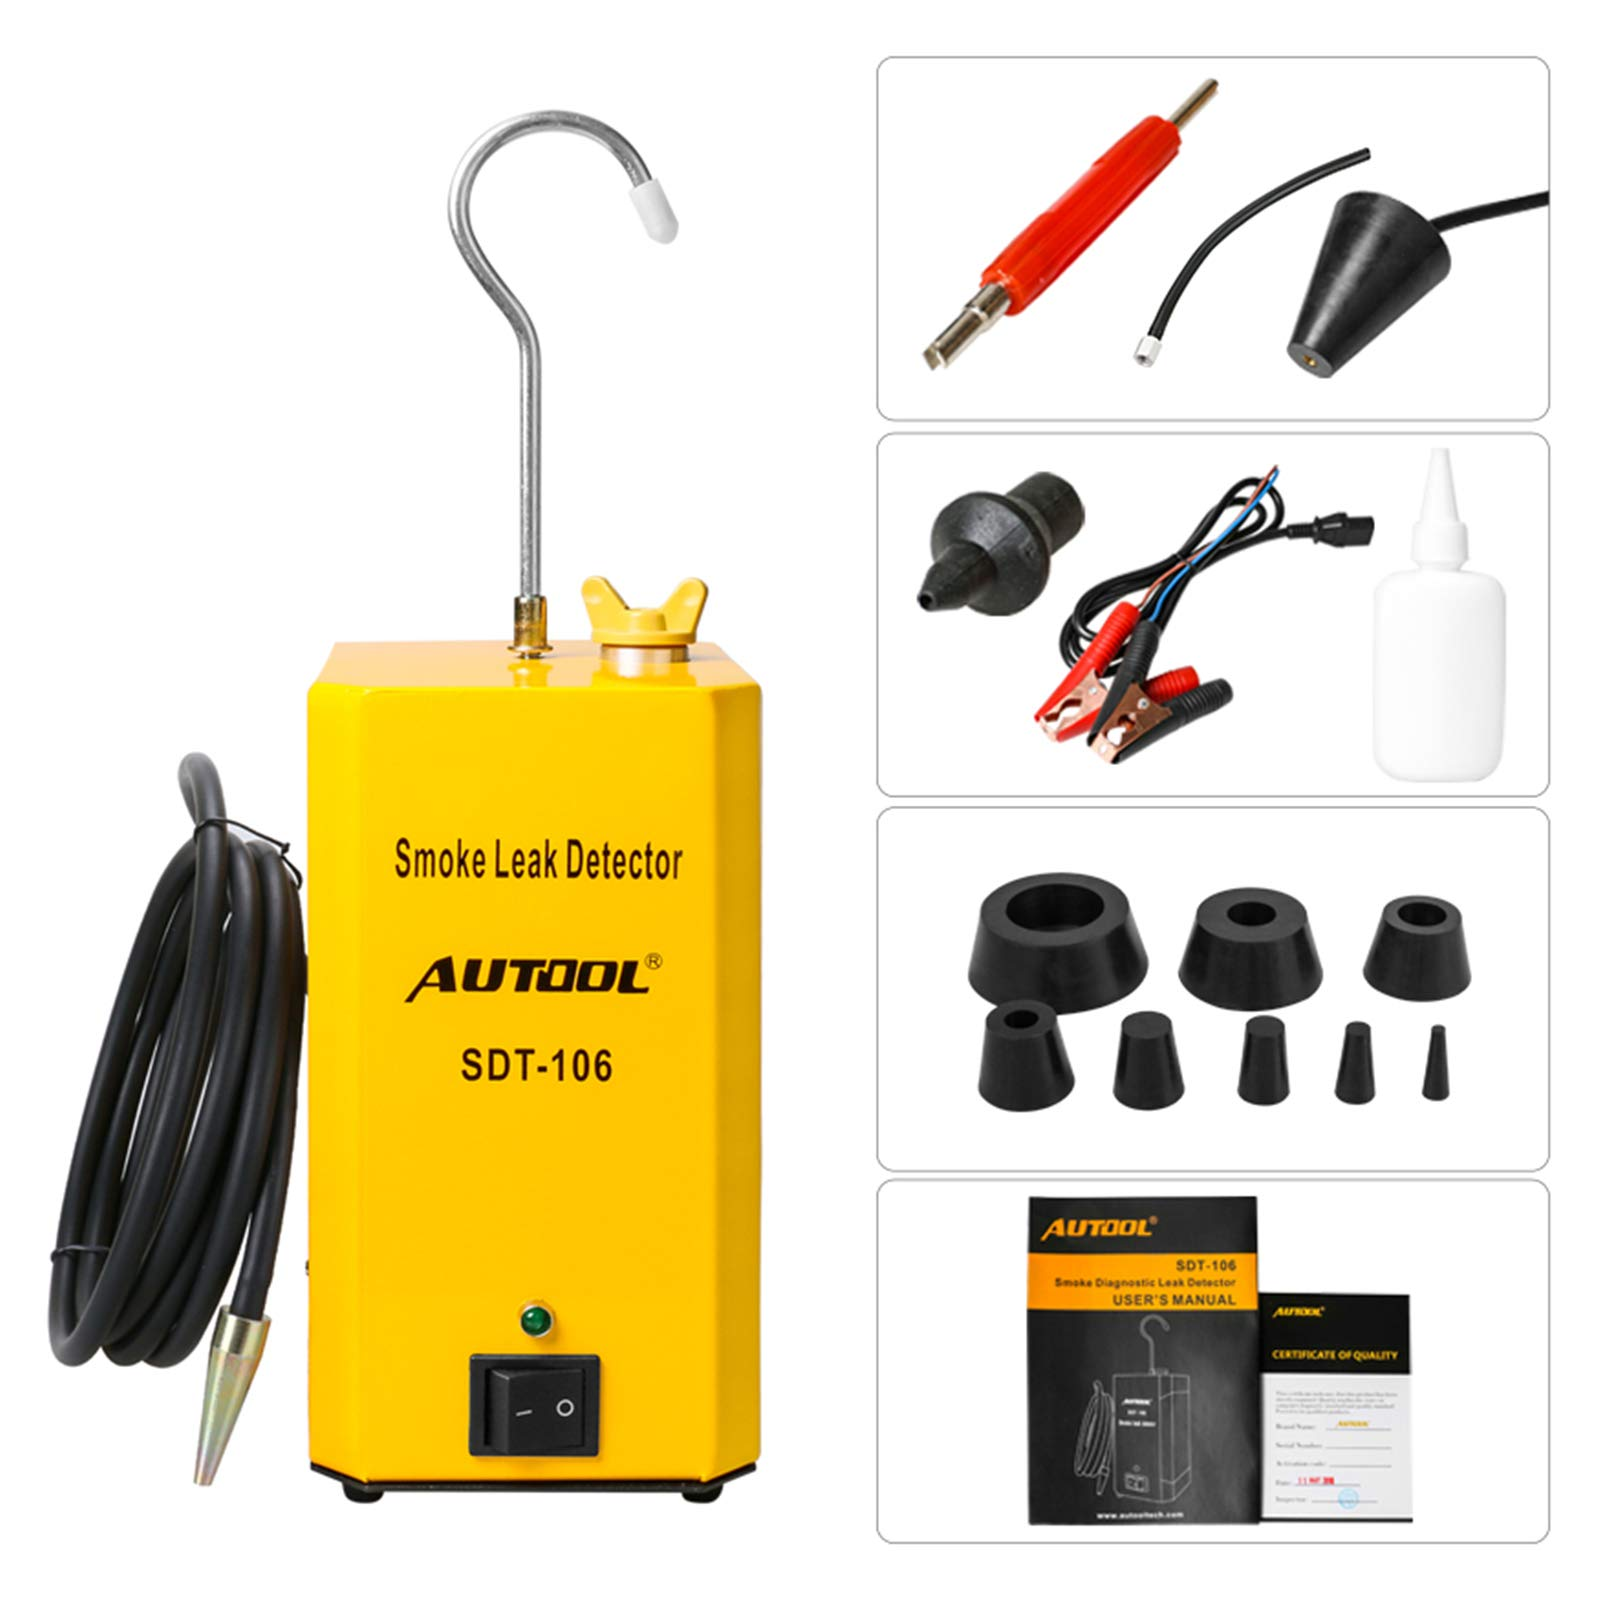 AUTOOL 01 Automotive Smoke Detector Evap Pipe Leakage Tester Fuel Leak Locator Universal for Motorcycle/Car/Truck by AUTOOL